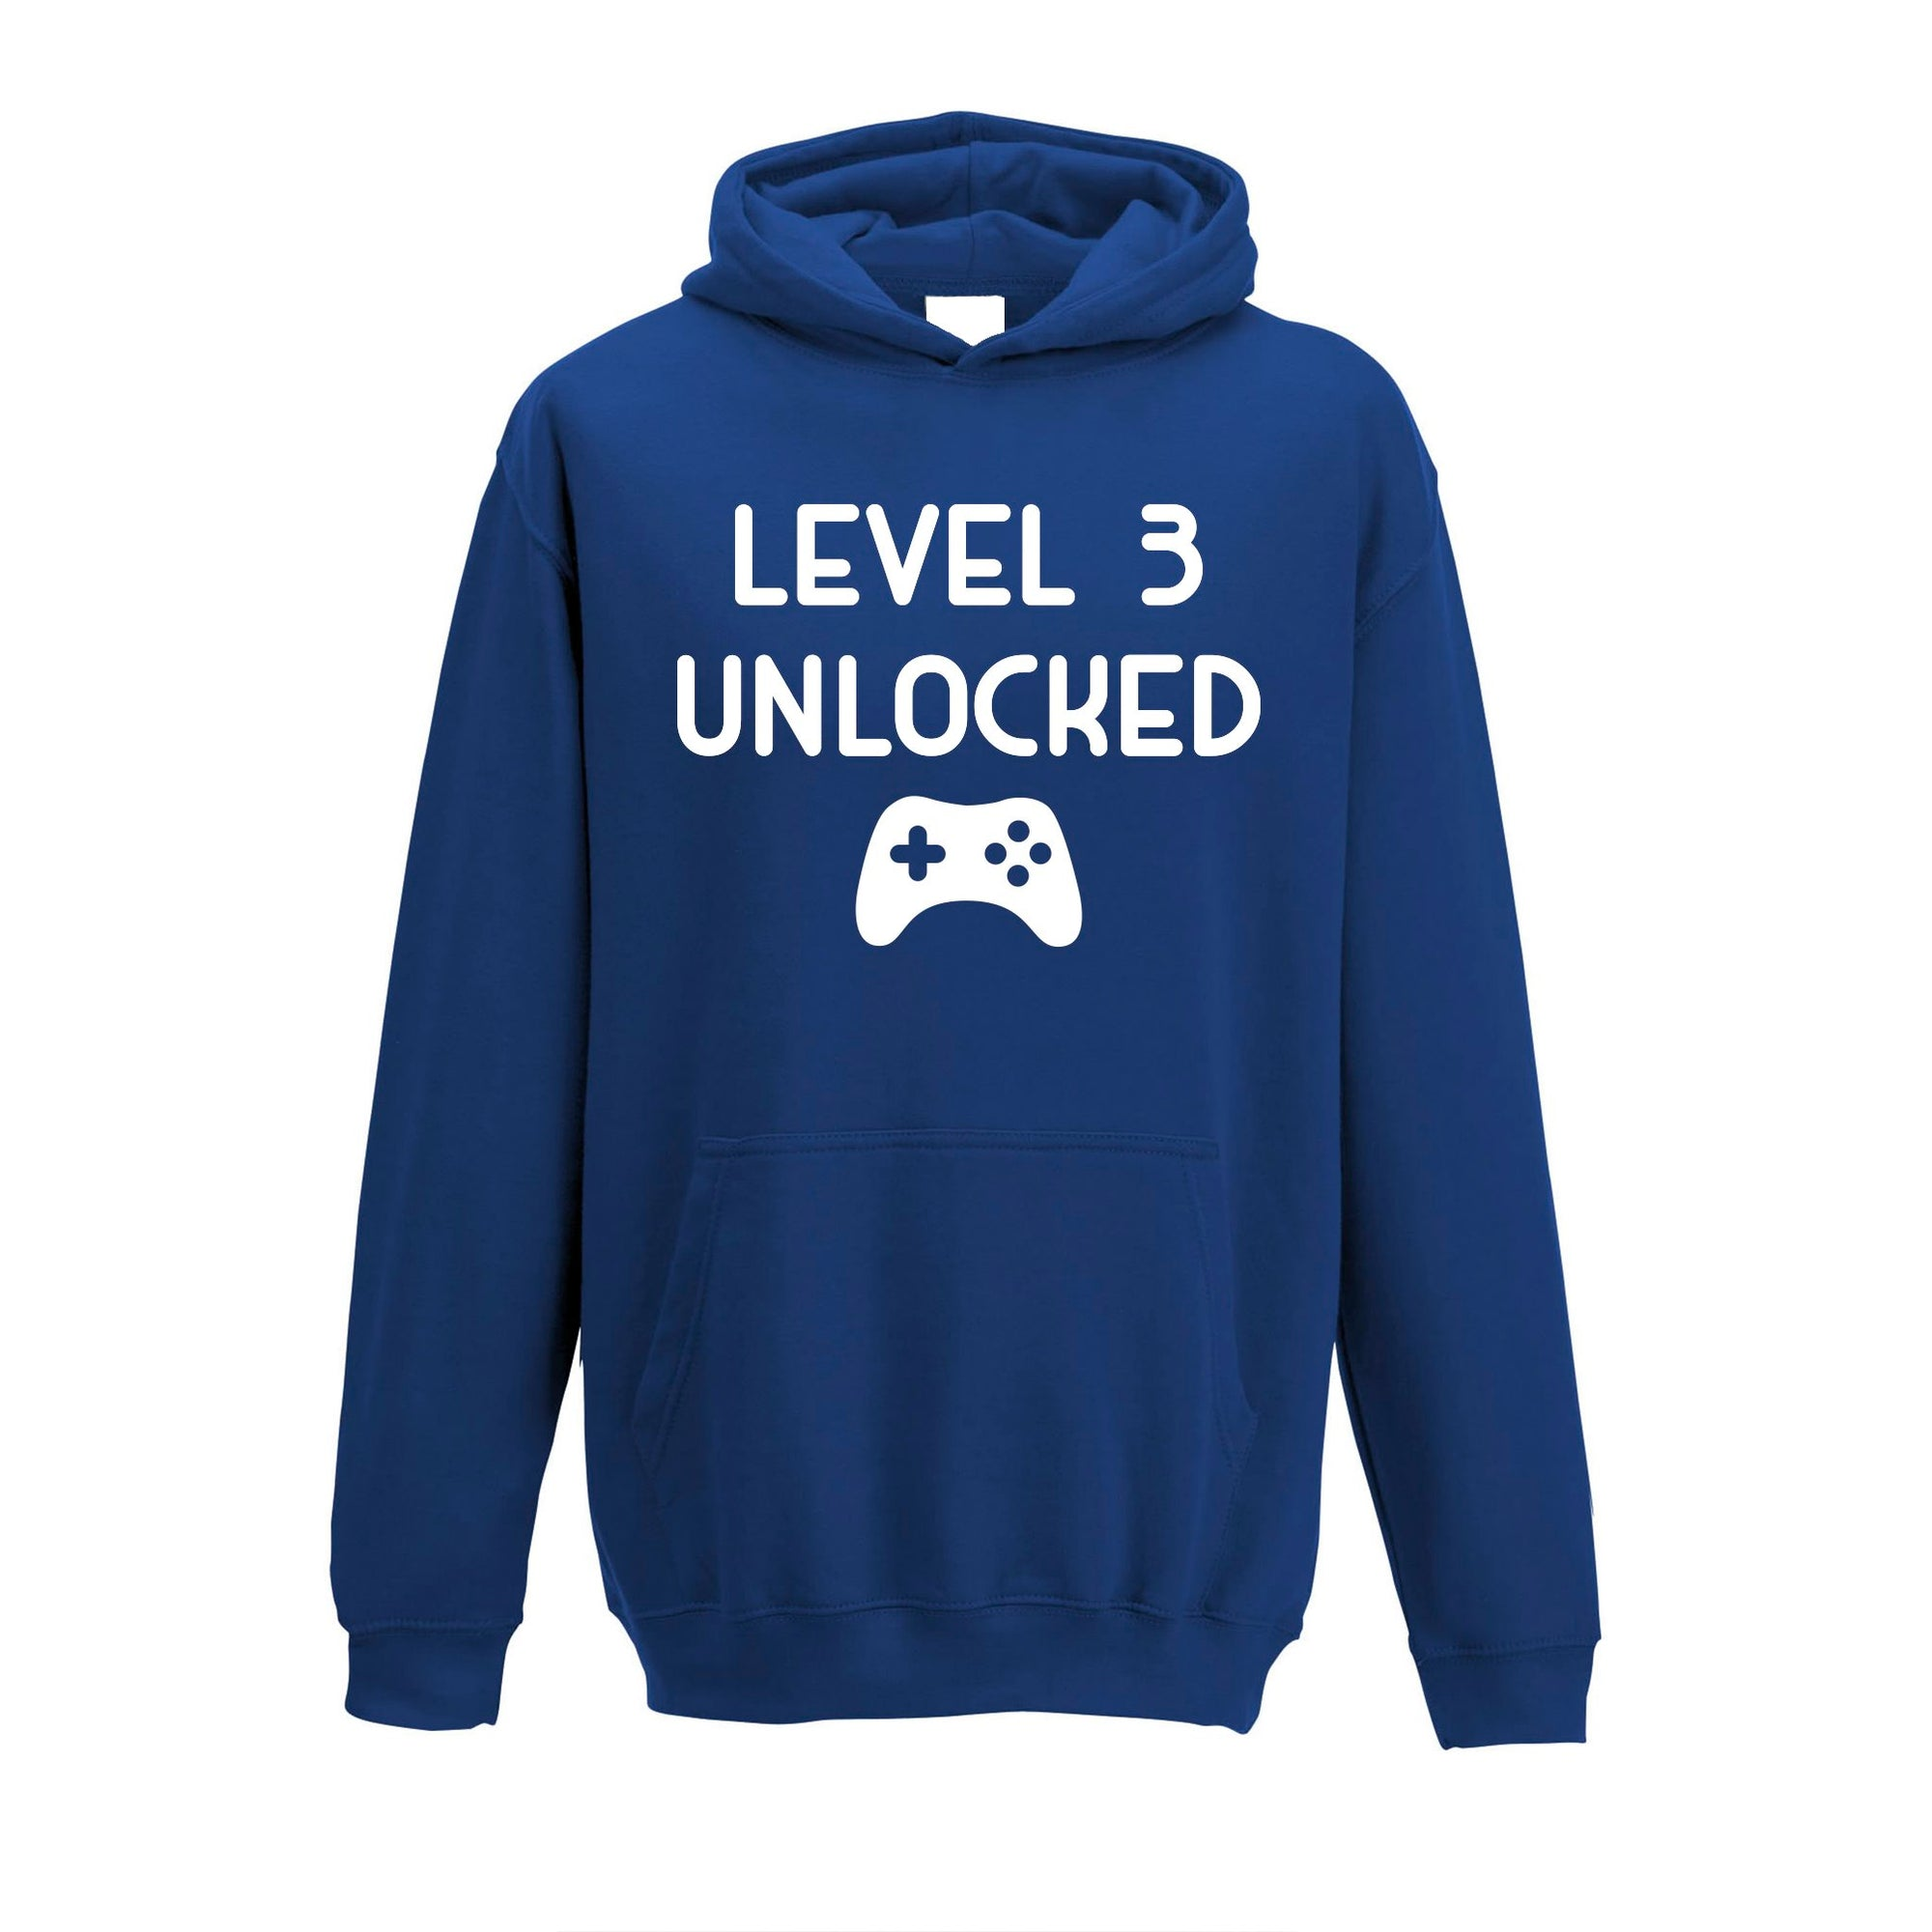 Gamers 3rd Birthday Kids Hoodie Level 3 Unlocked Kids Childs